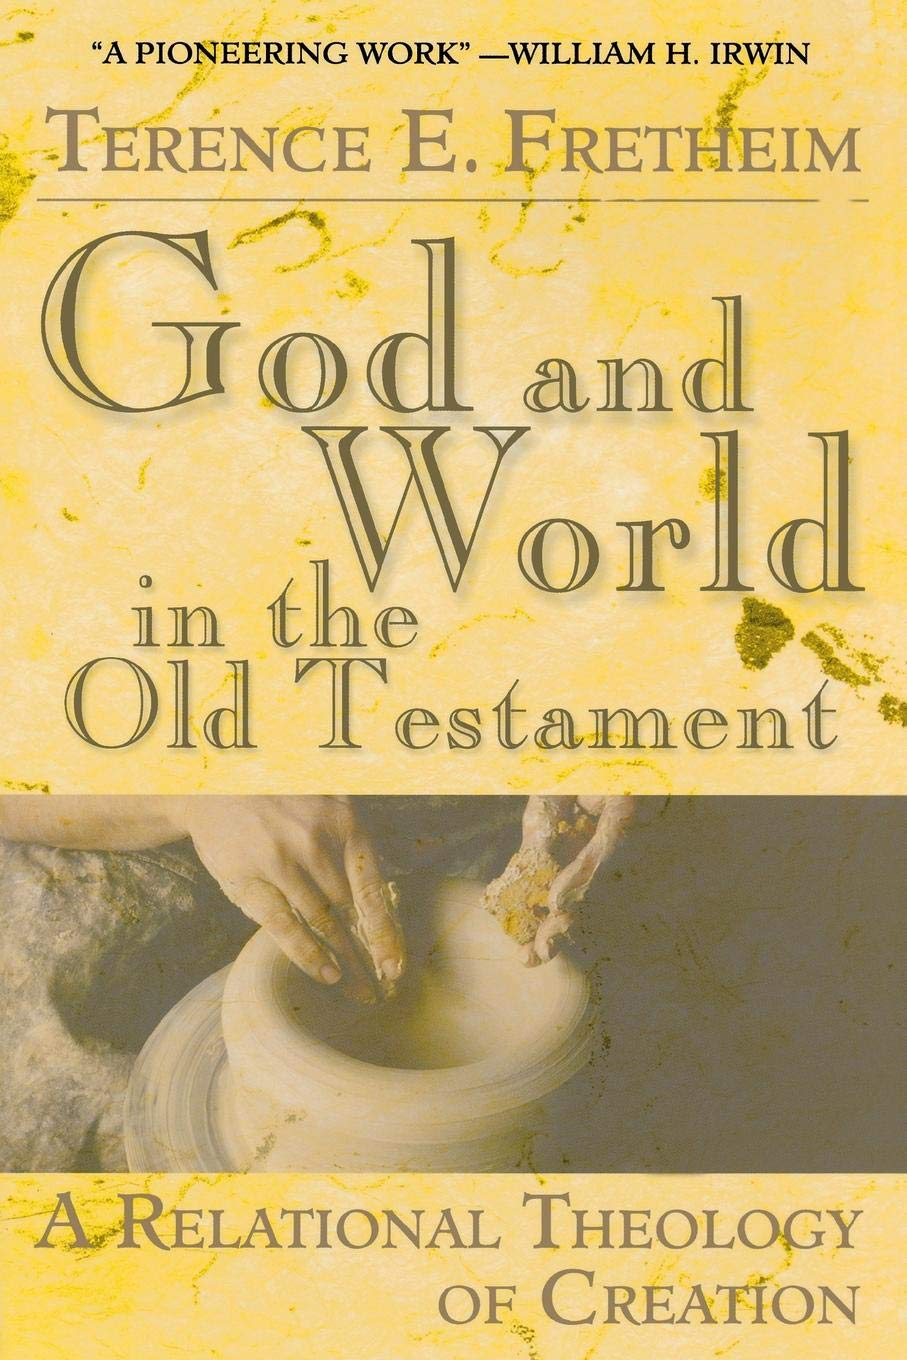 God and World in the Old Testament: A Relational Theology of Creation:  Terence E. Fretheim: 9780687342969: Amazon.com: Books